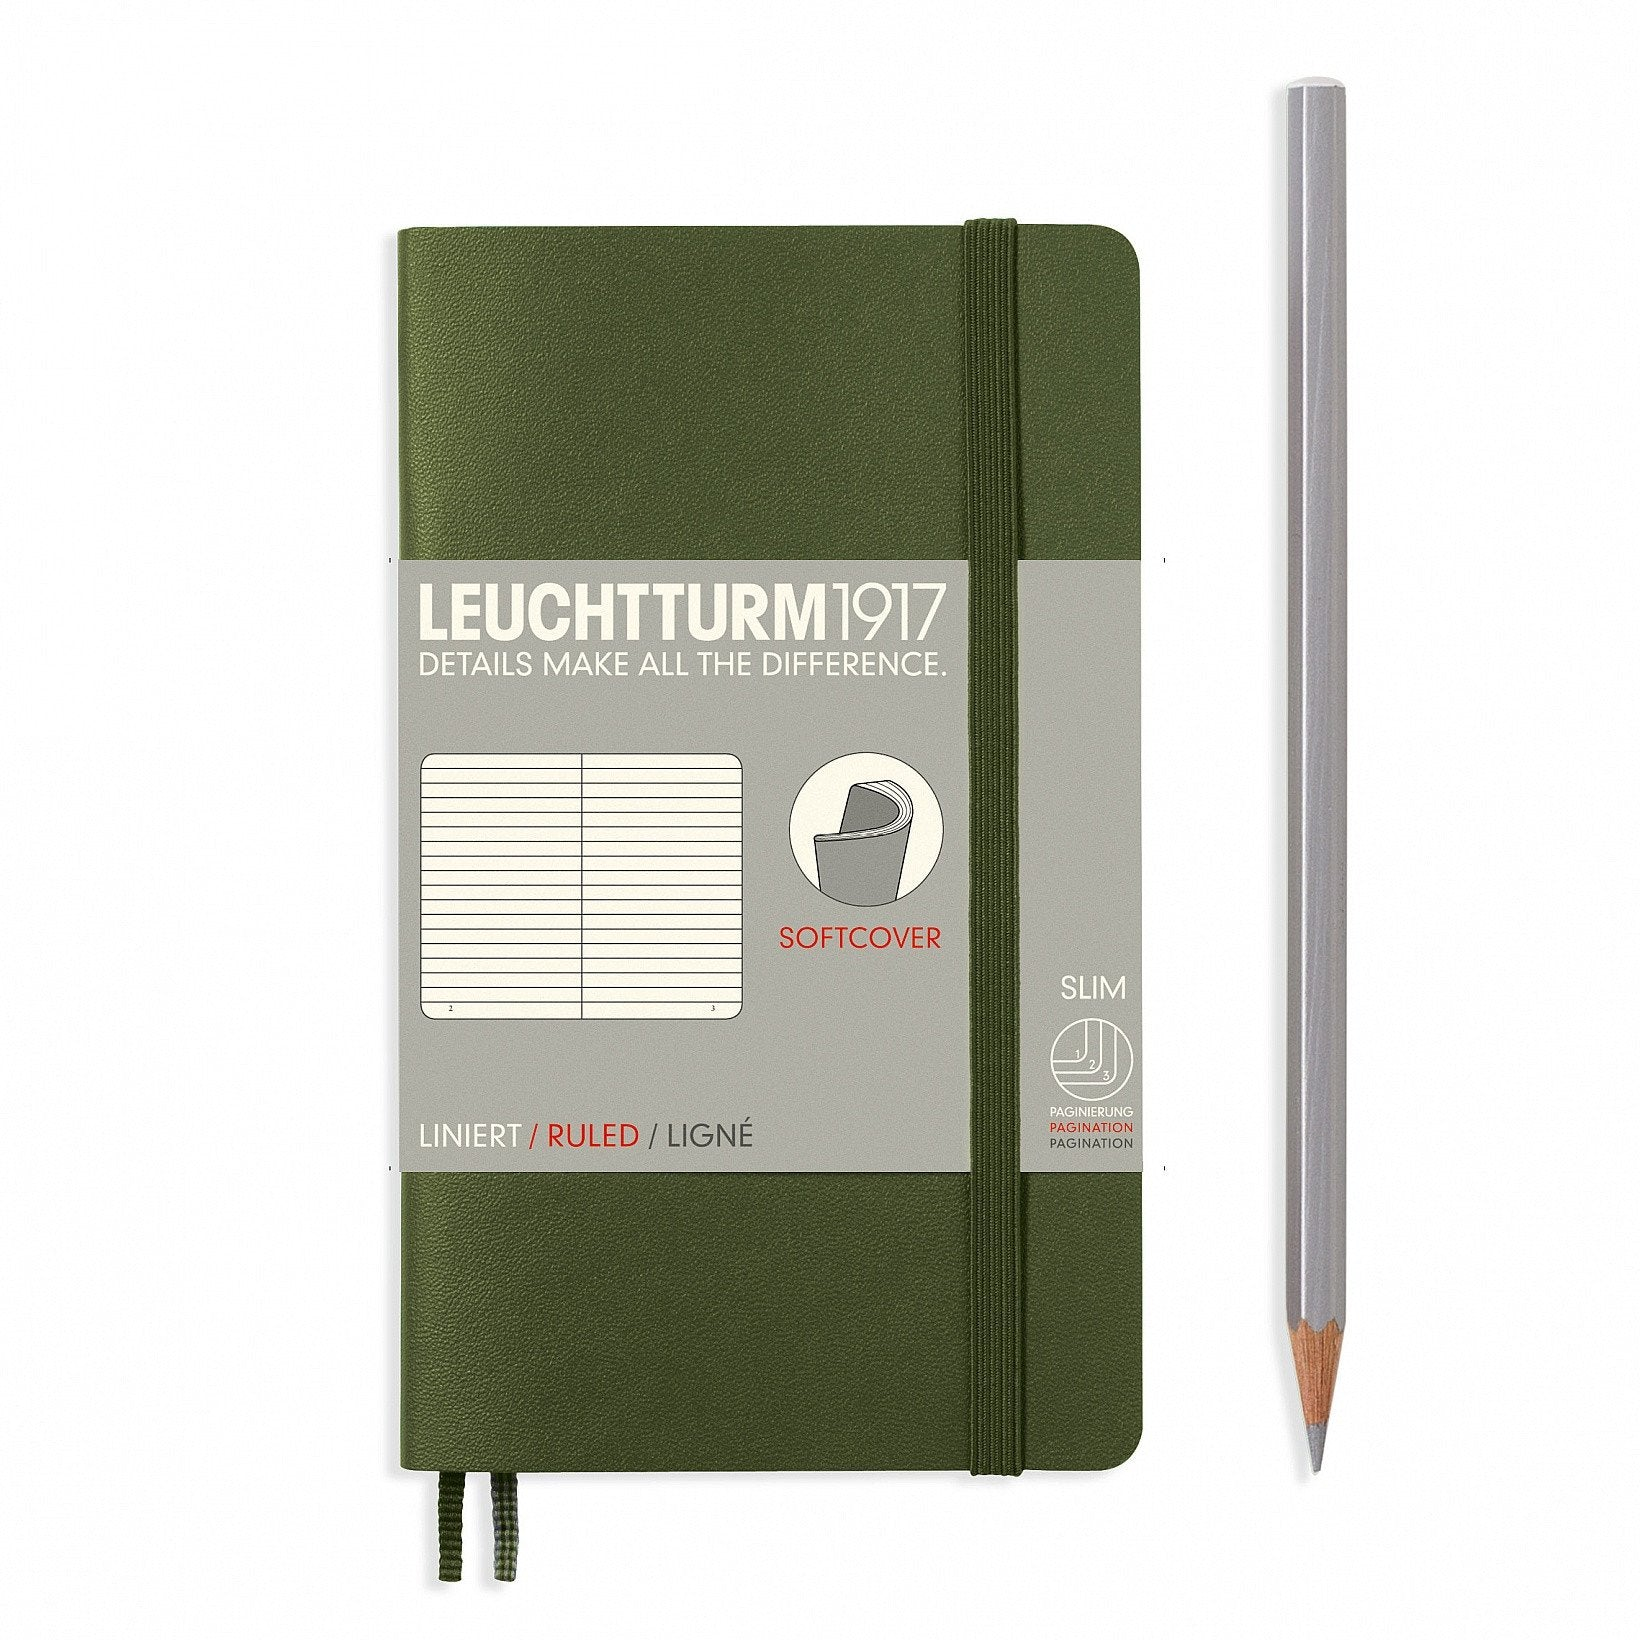 Leuchtturm1917 - A6 Notebook - Softcover